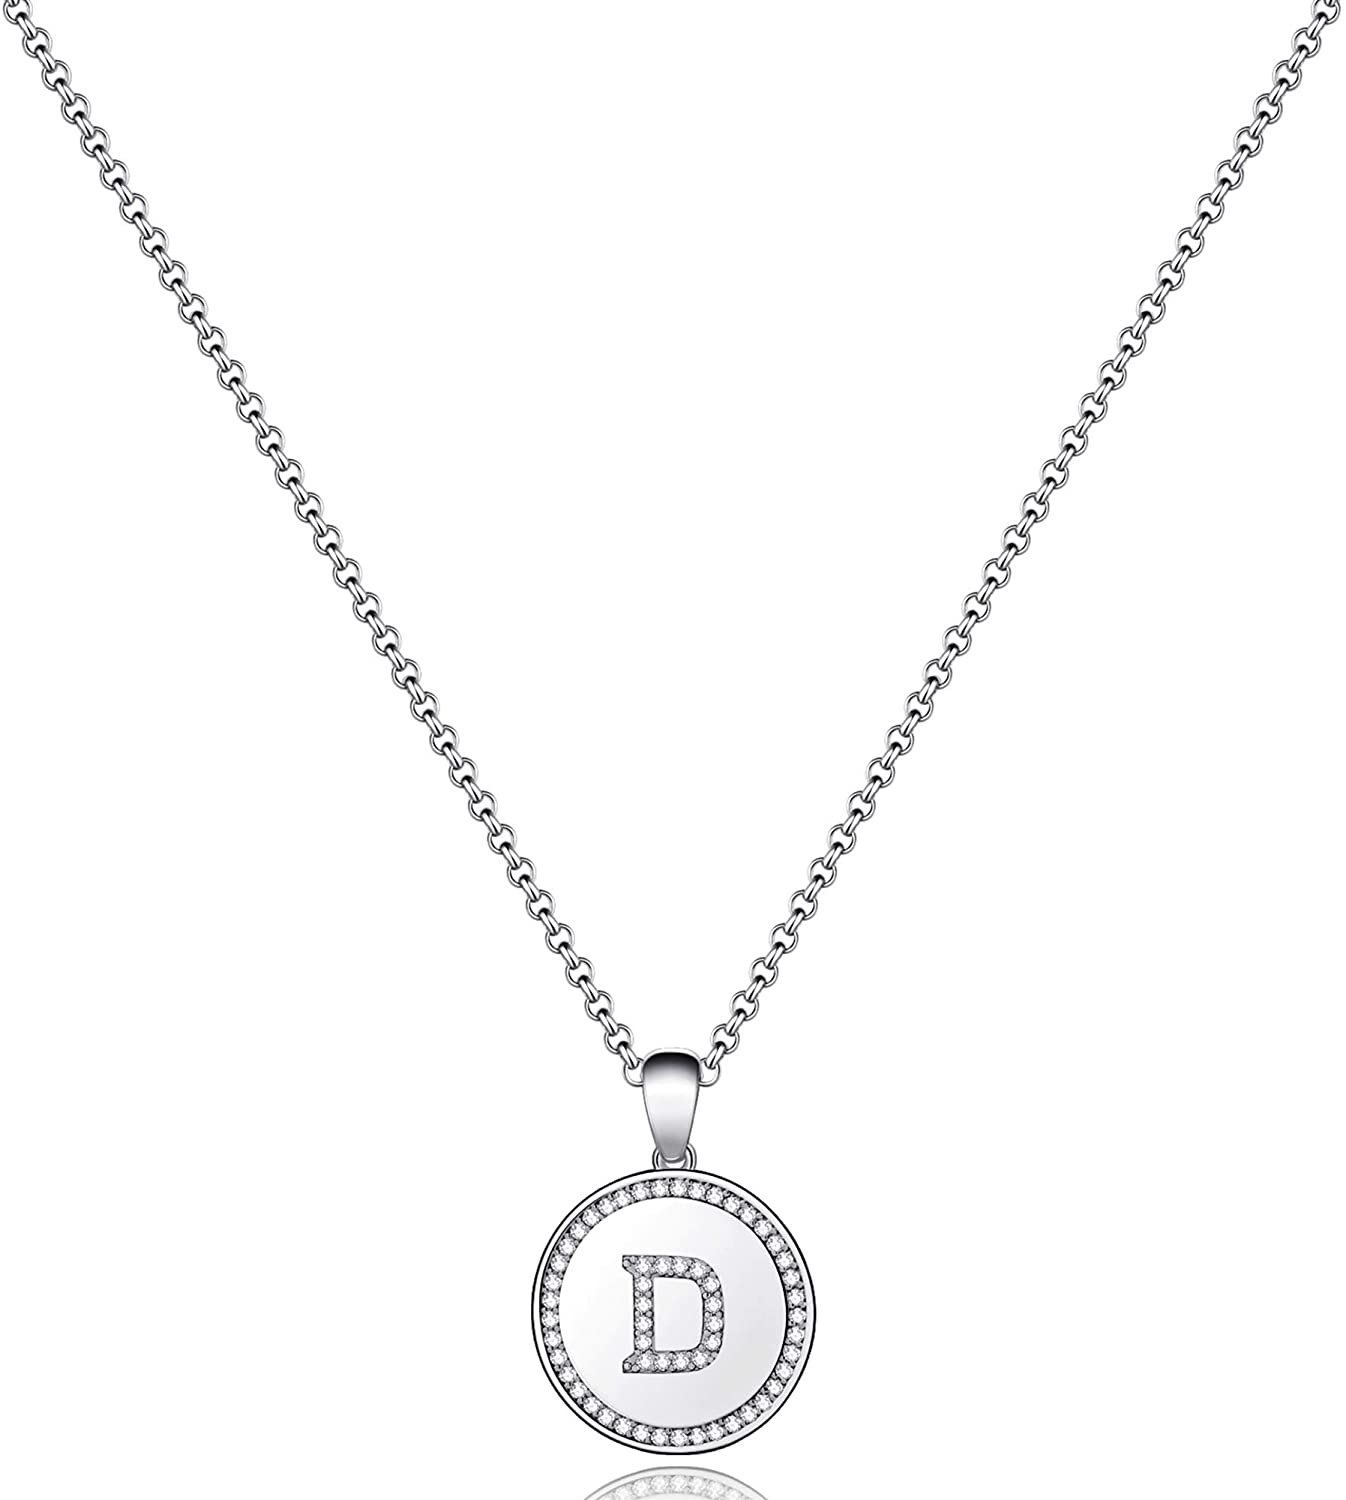 MONOZO Disc Initial Necklace for Women, 14k Gold Filled CZ Initial Letter Pendant Necklace Dainty Disc A-Z Alphabet Necklace Jewelry Gifts for Women Teen Girls